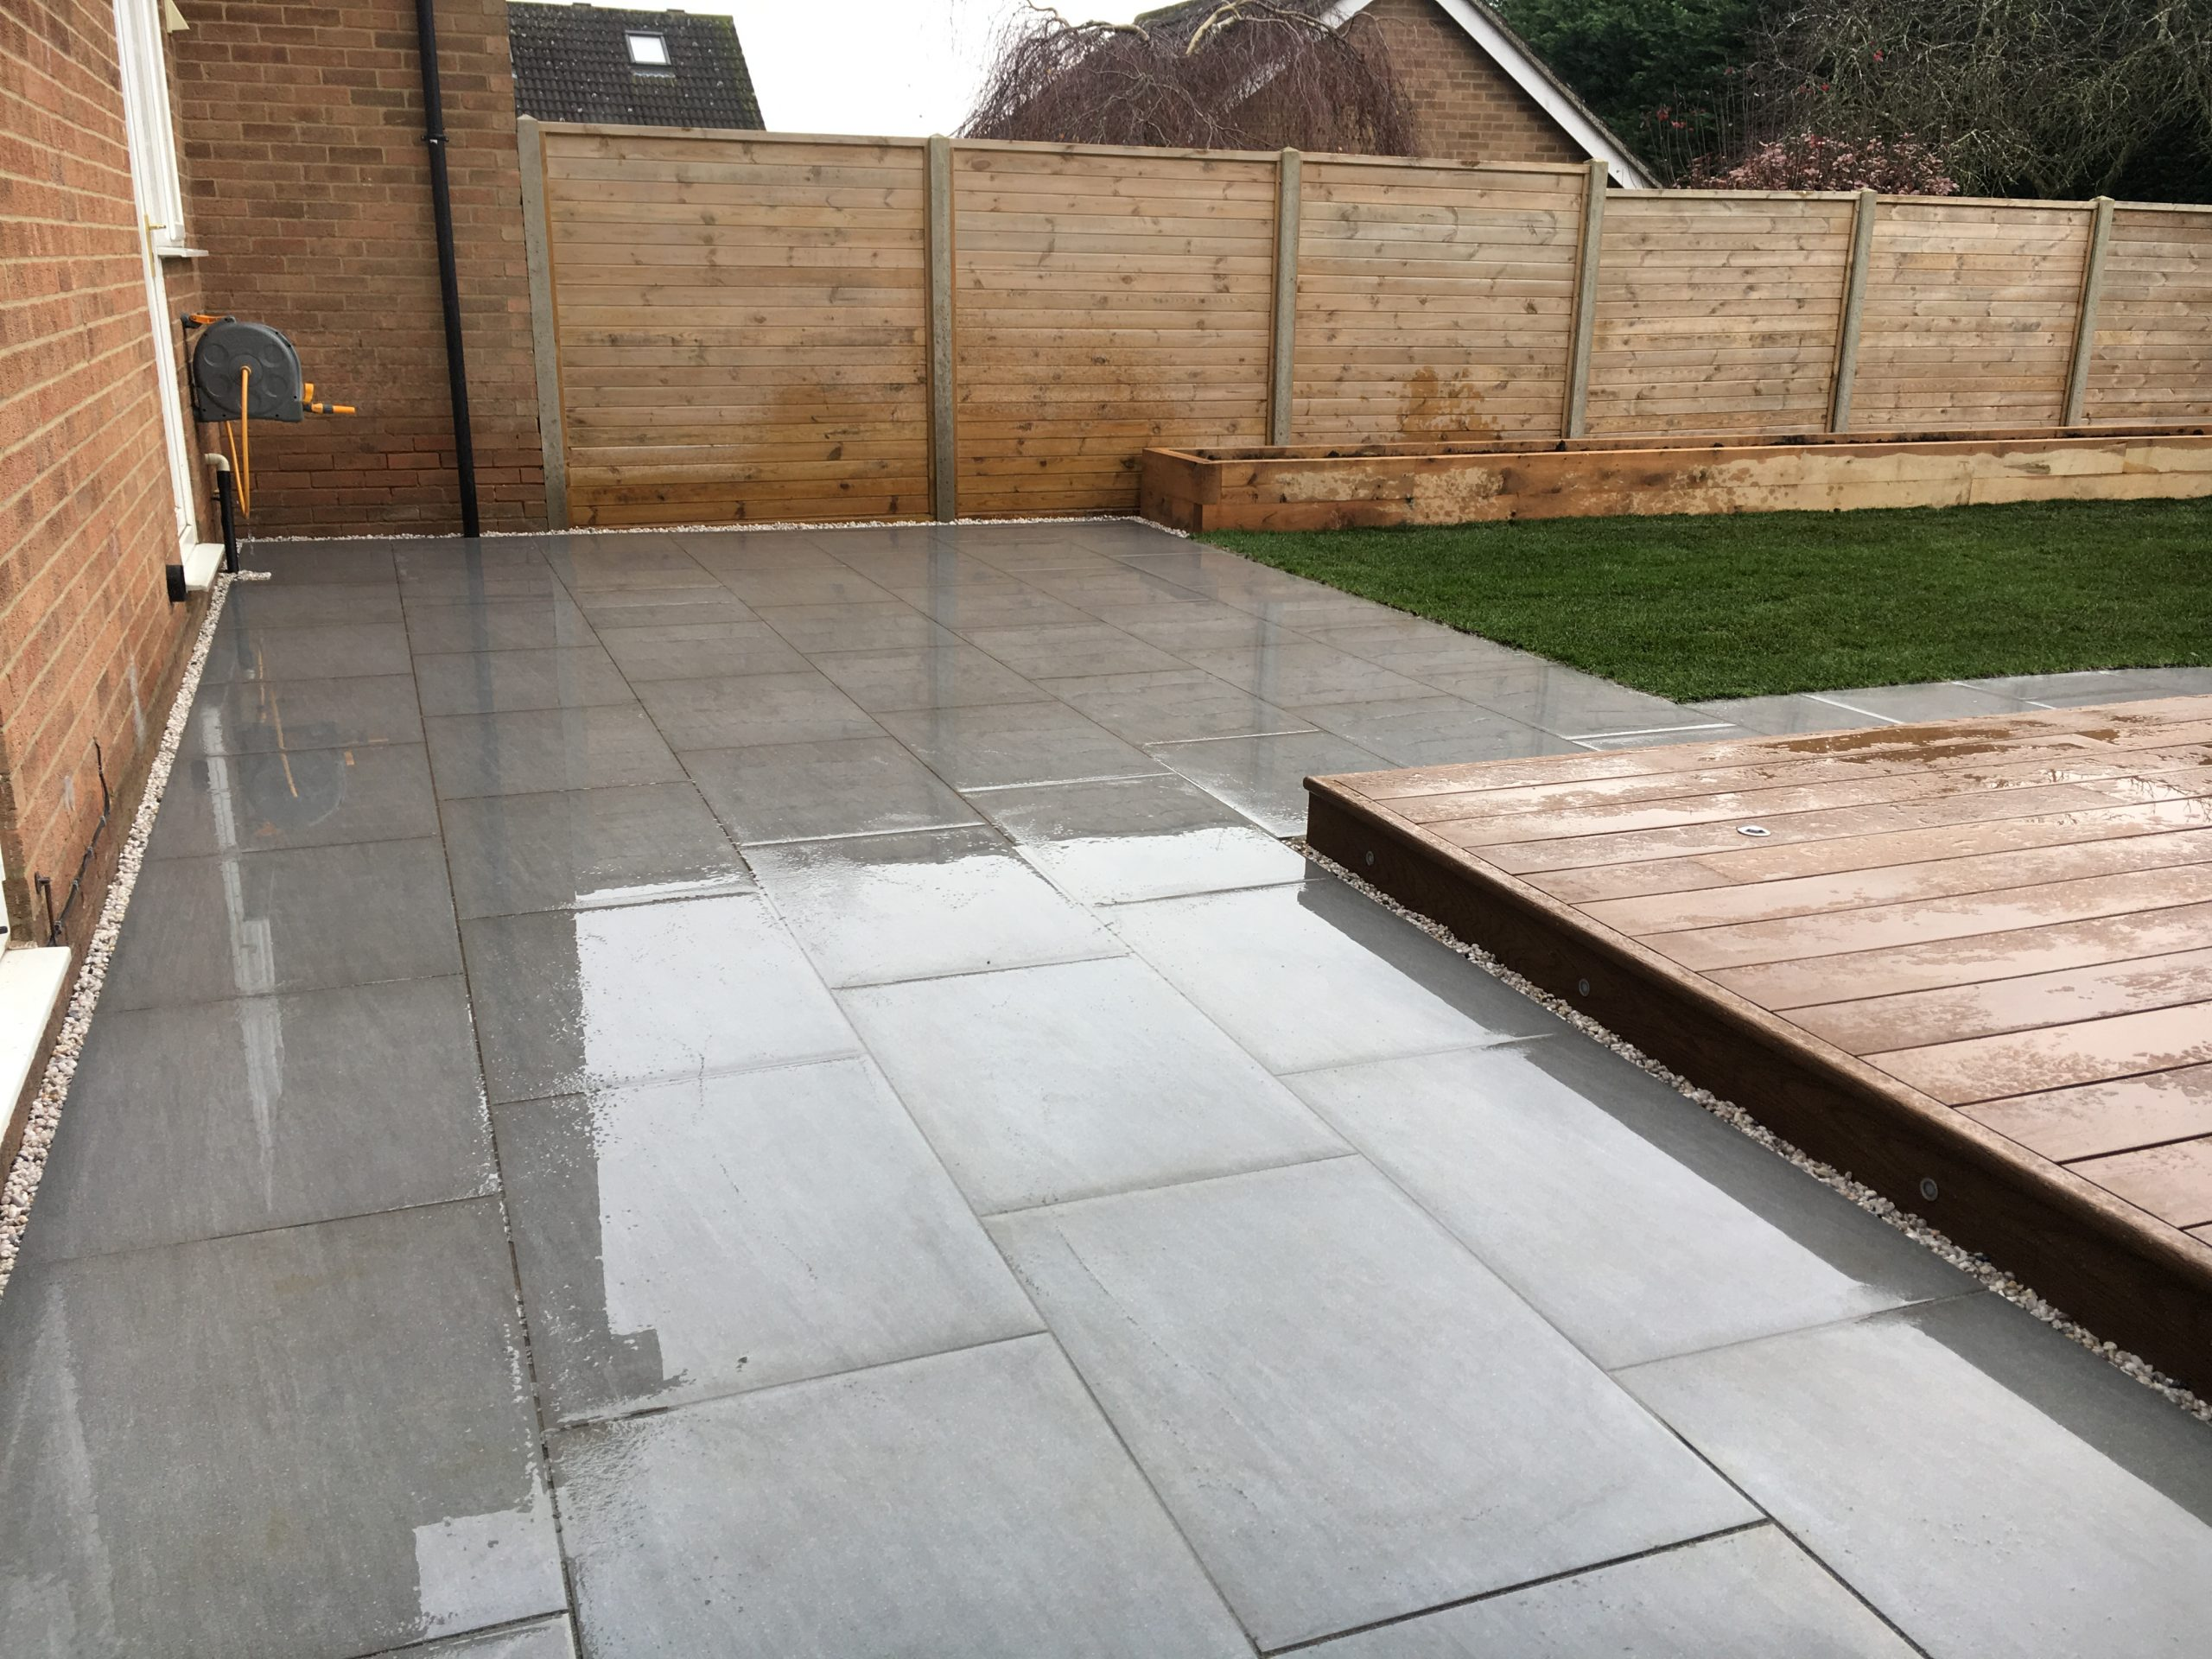 Landscaping Company in Cambridge - Millboard decking